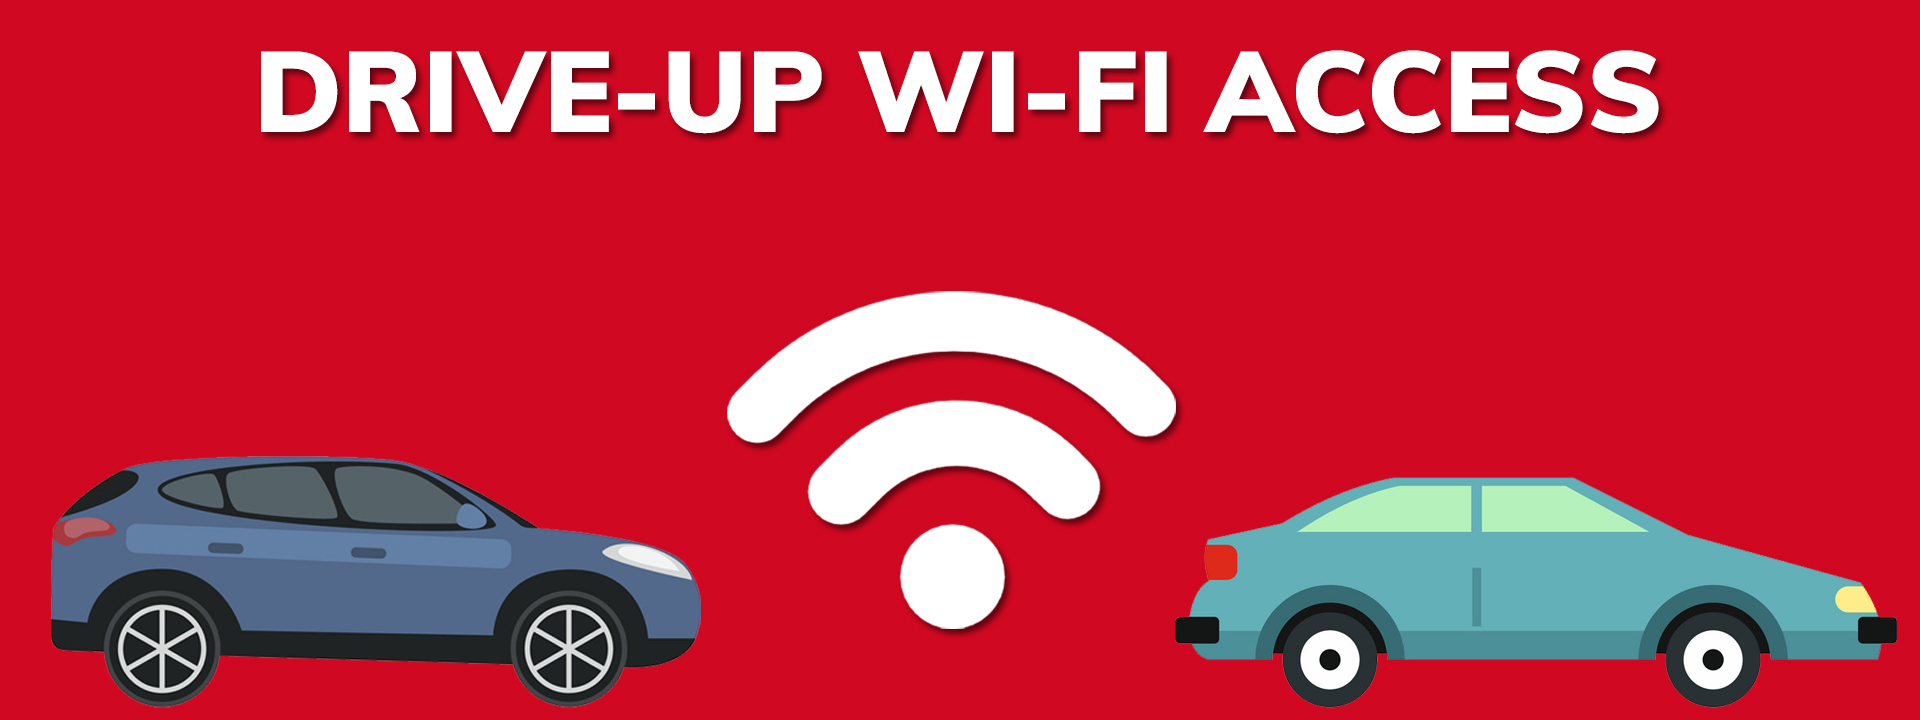 drive-up wi-fi access with image of two cars and internet signal